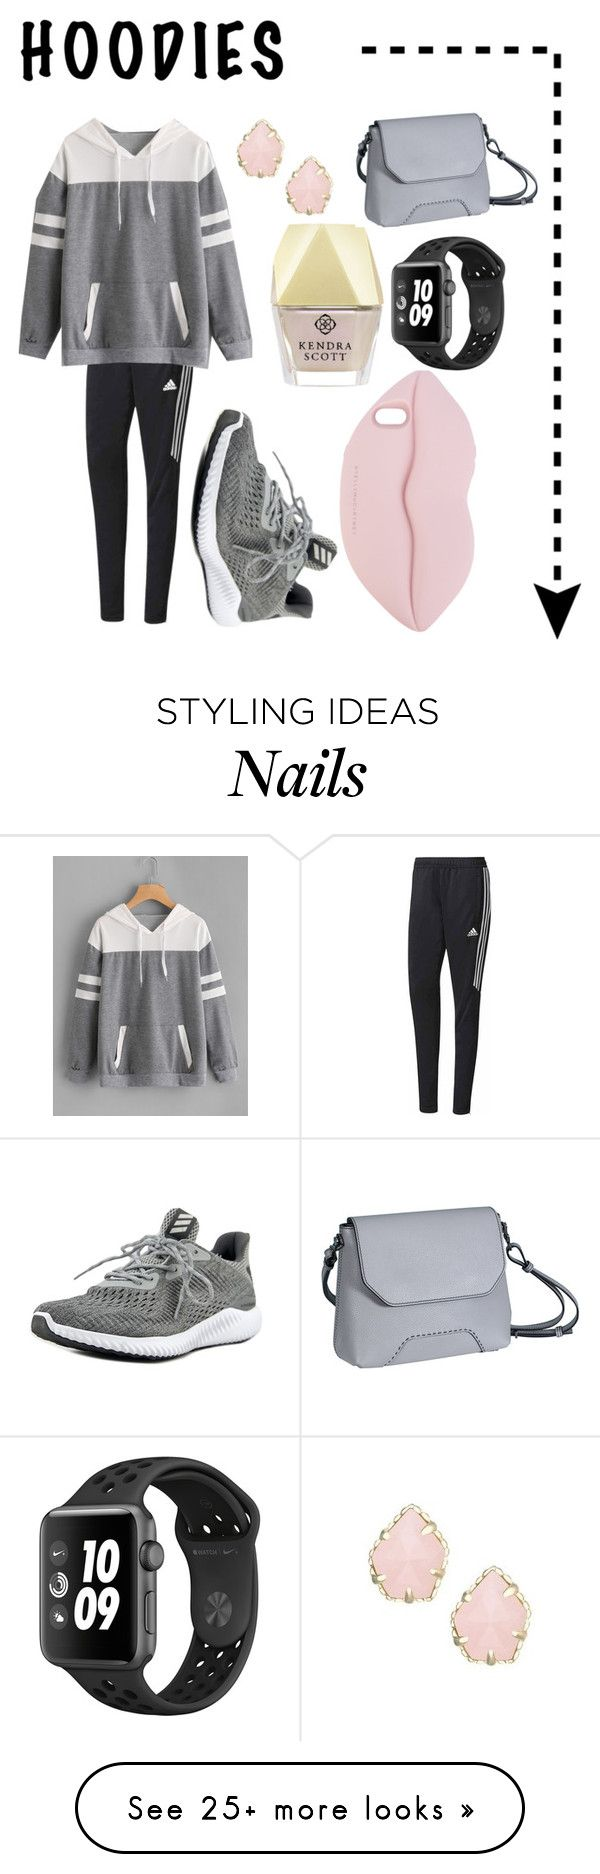 """Untitled #157"" by soccerole on Polyvore featuring adidas, Kendra Scott, Monteneri, STELLA McCARTNEY and Hoodies"